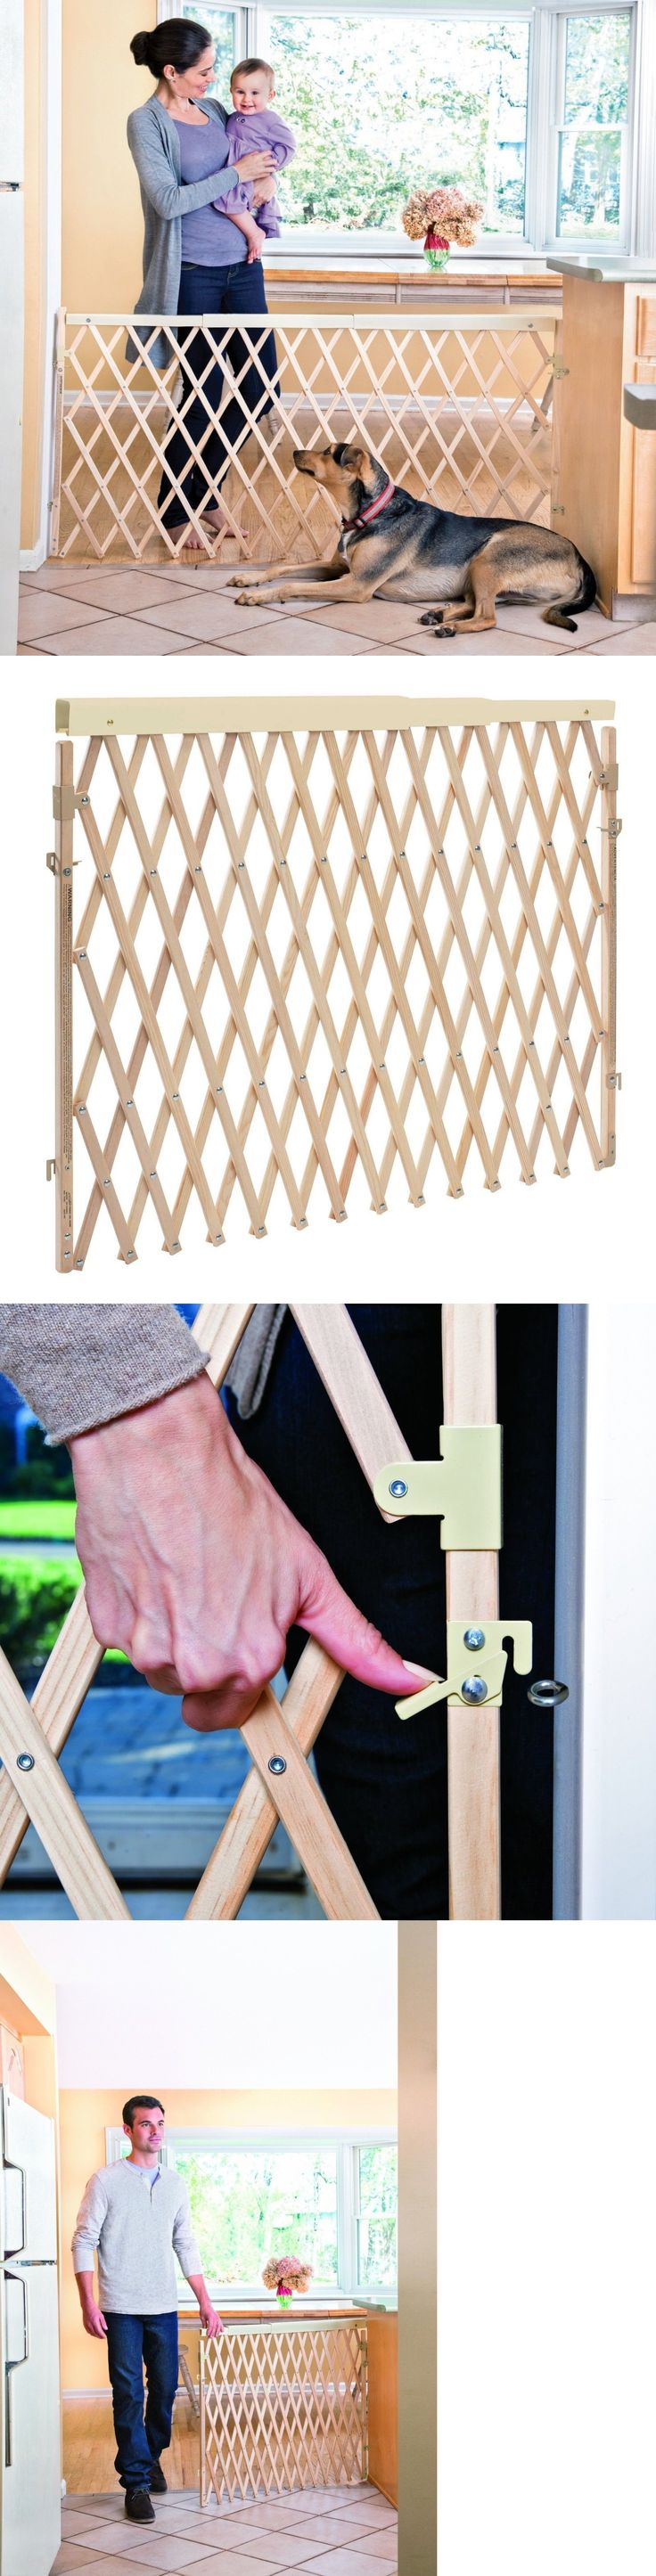 Baby Safety and Health 20433: Expandable Swing Wide Gate Fence Baby Kids Child Pet Dog Safety Extra Wide Wood -> BUY IT NOW ONLY: $36.61 on eBay!